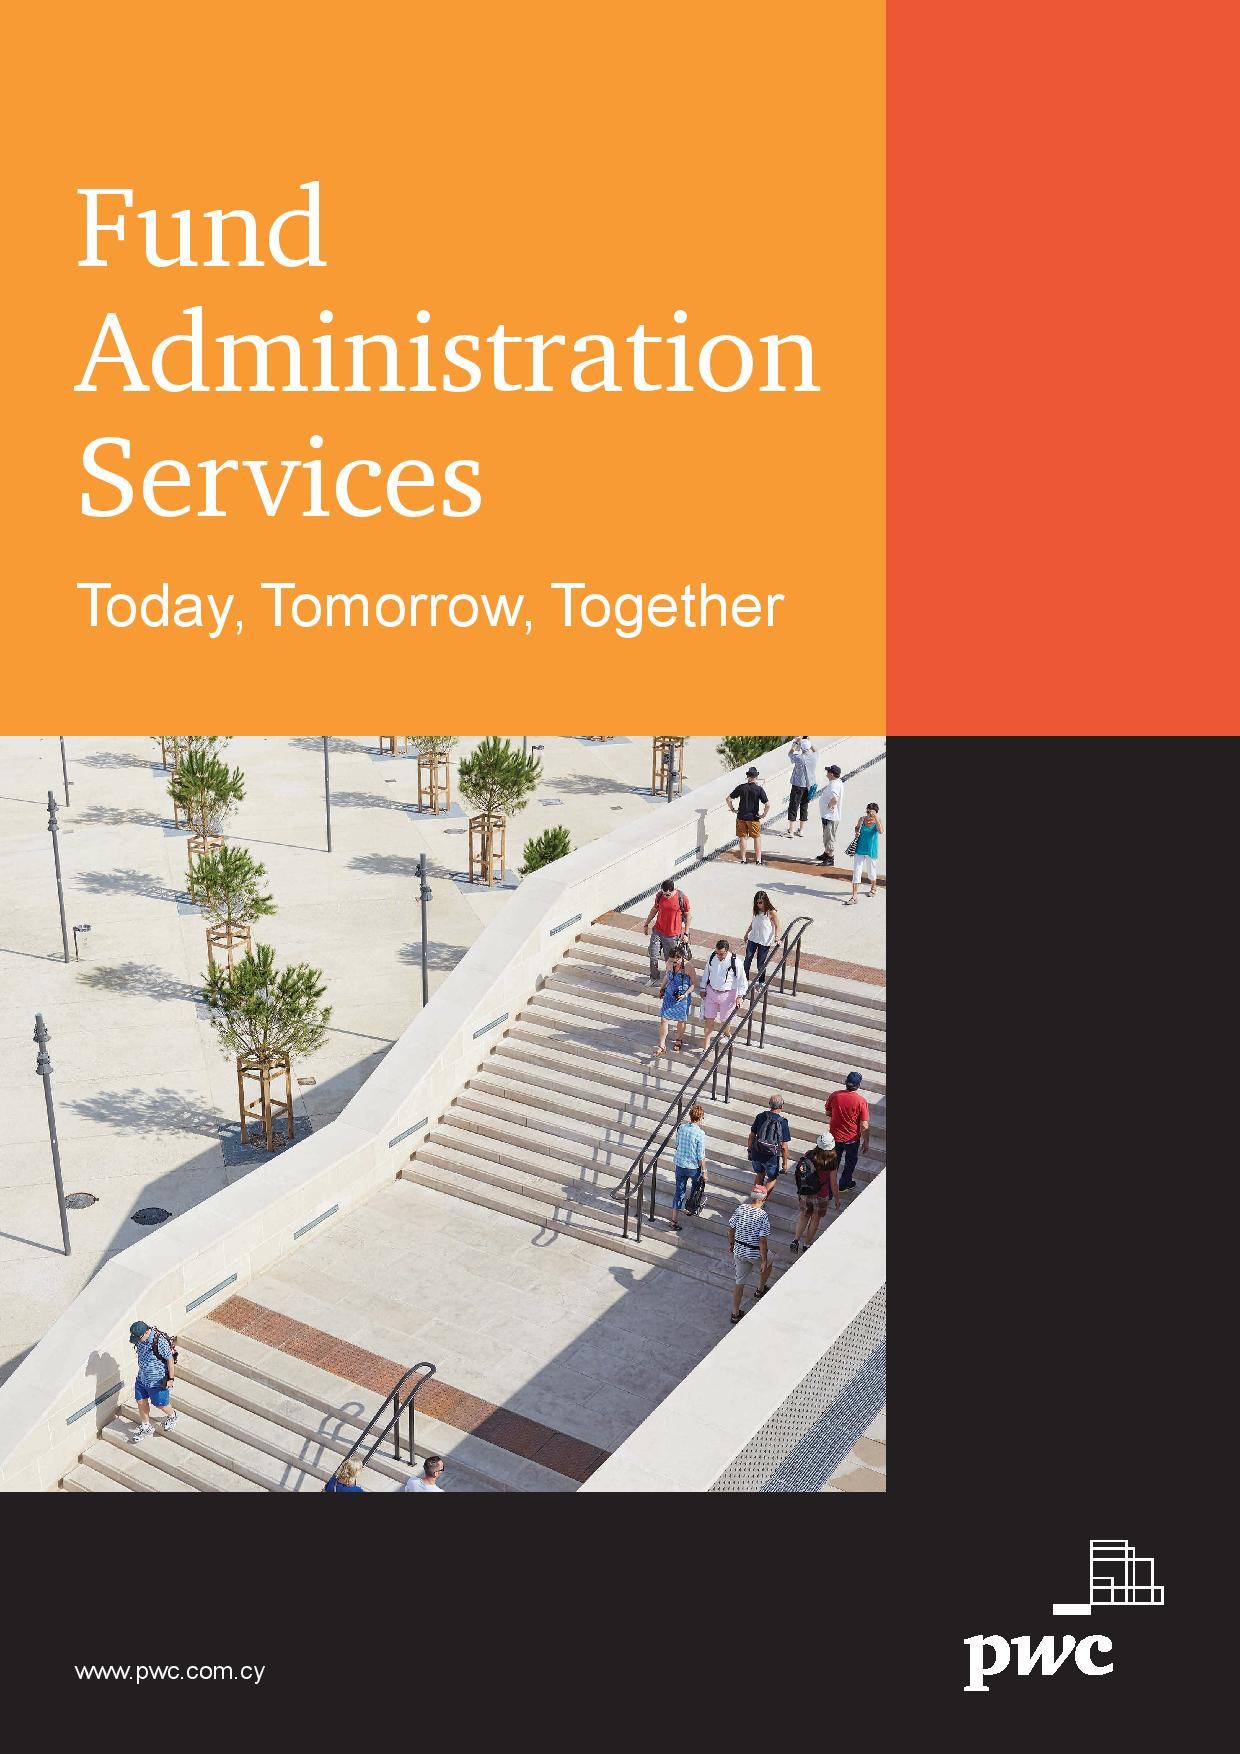 PwC: Fund Administration Services